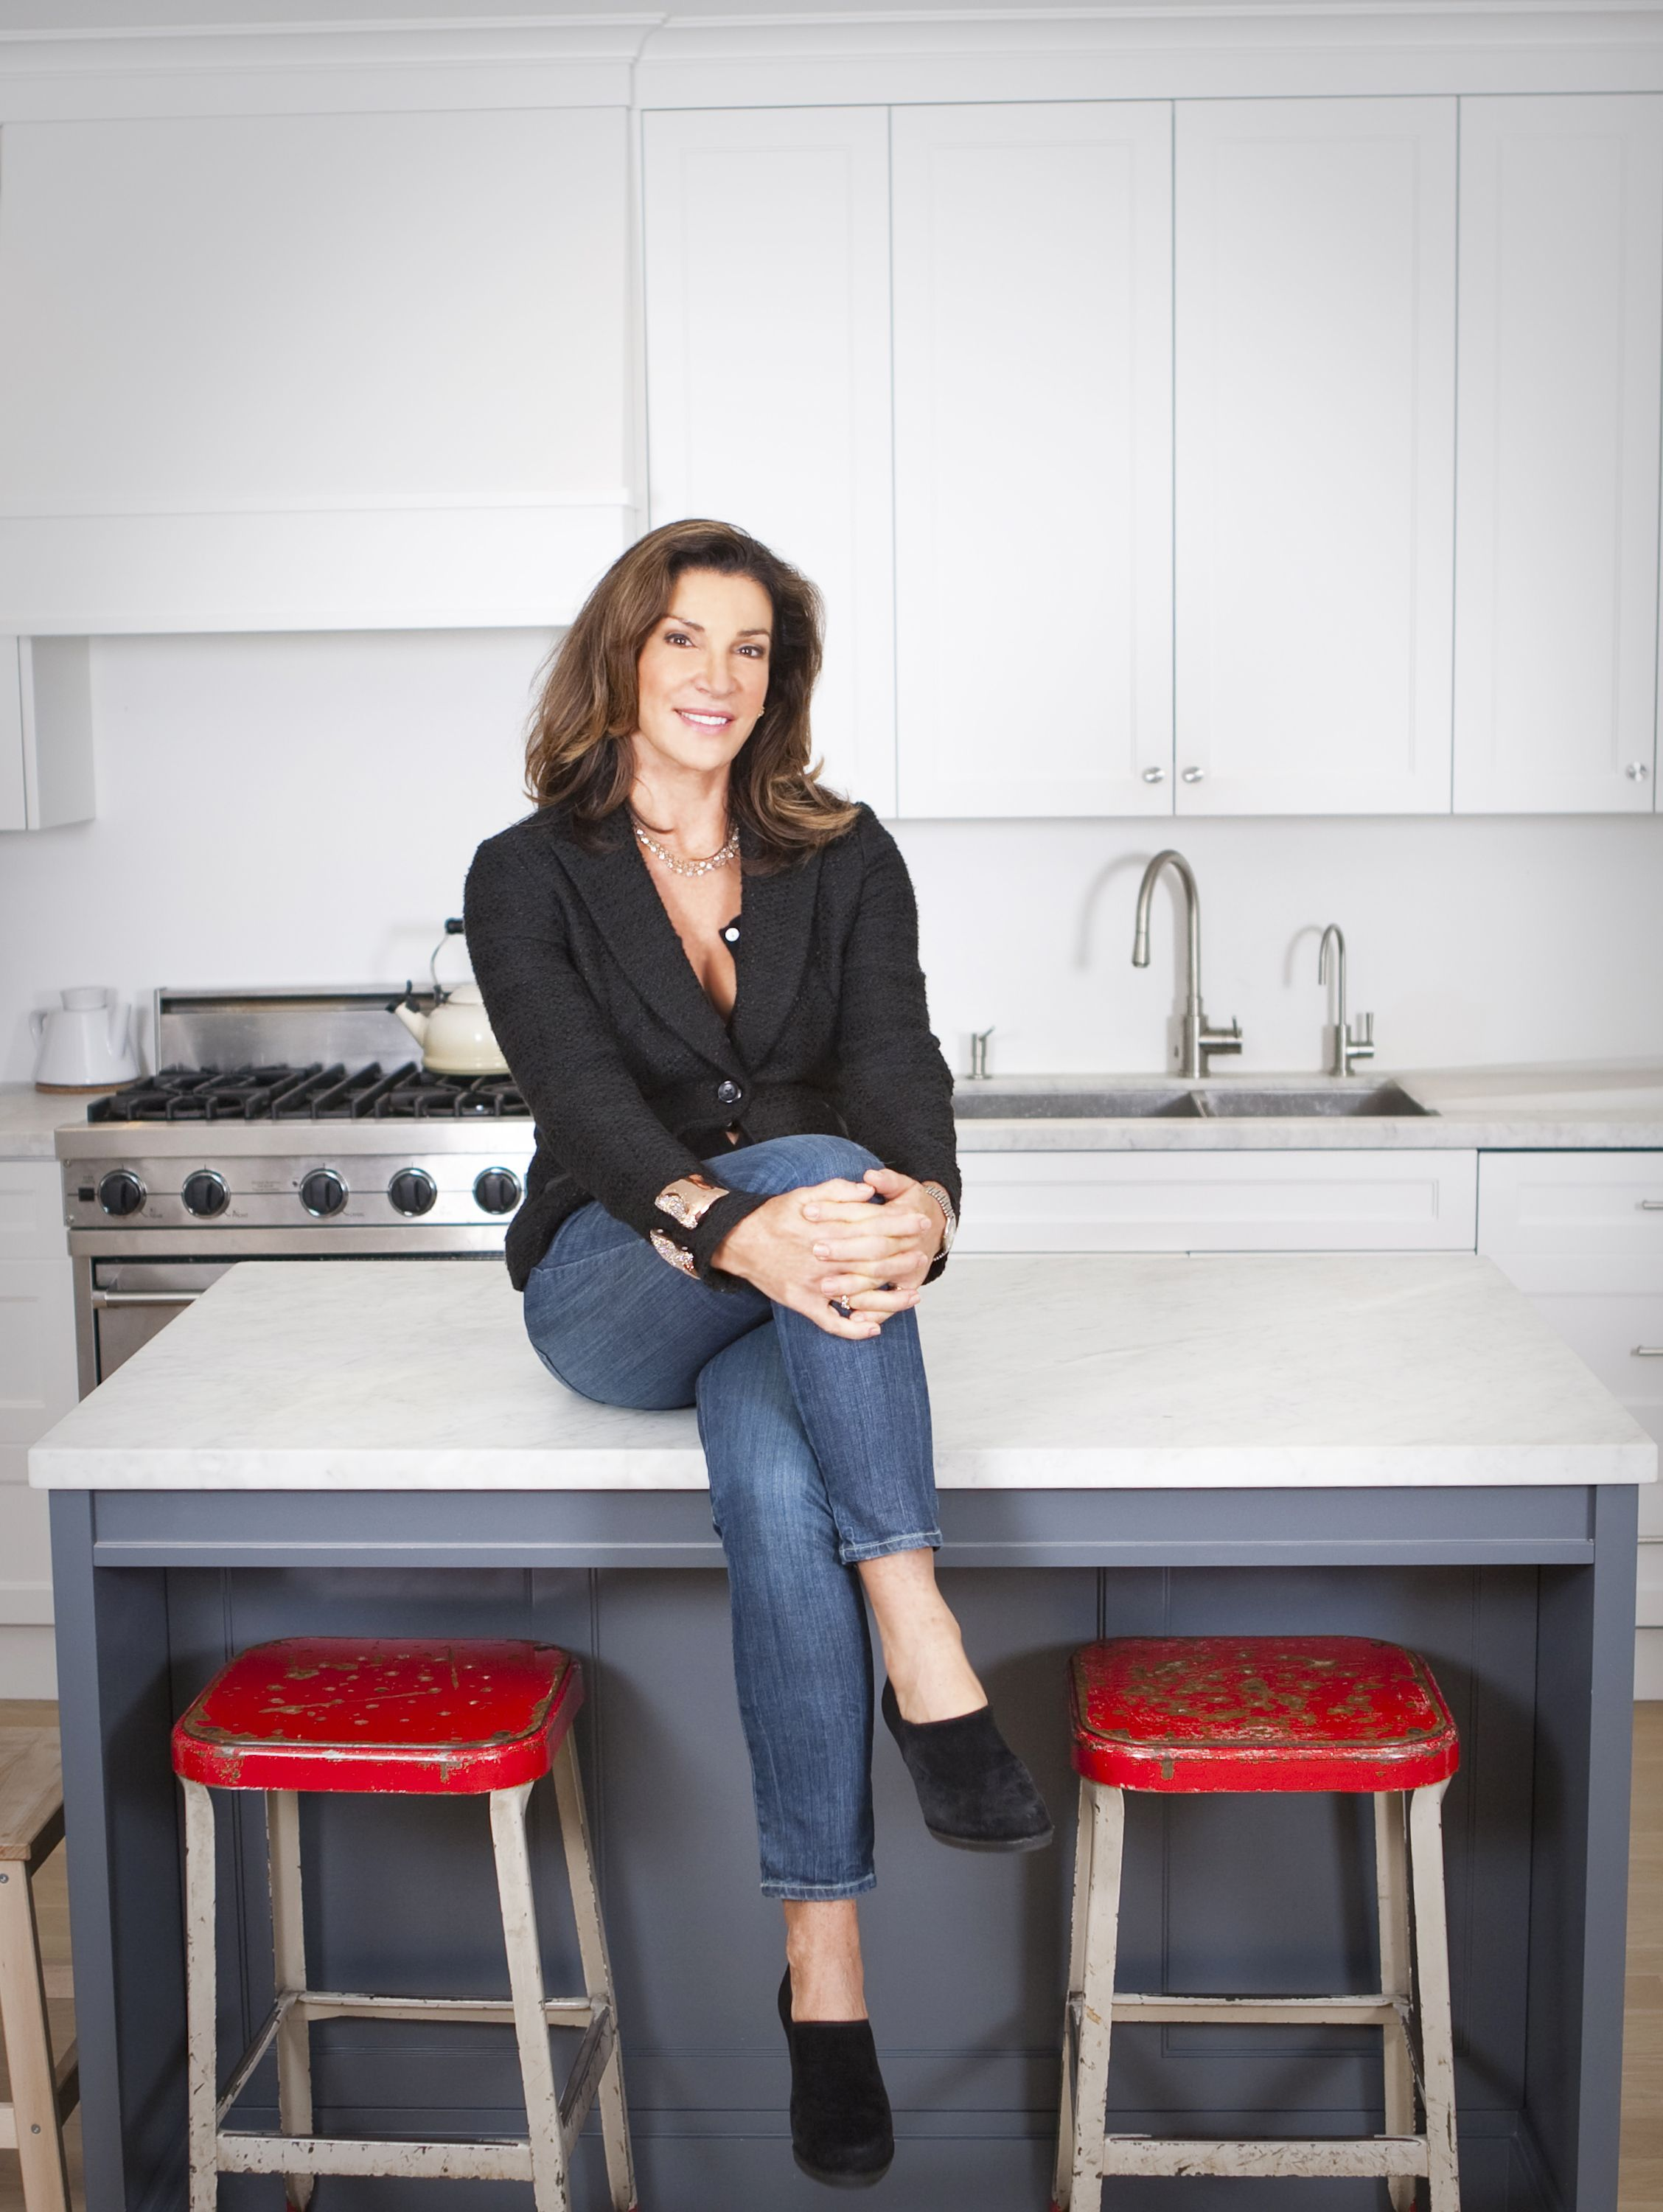 Hilary Farr   Hill You Are Awesome, You Work Very Hard And Get Some Of